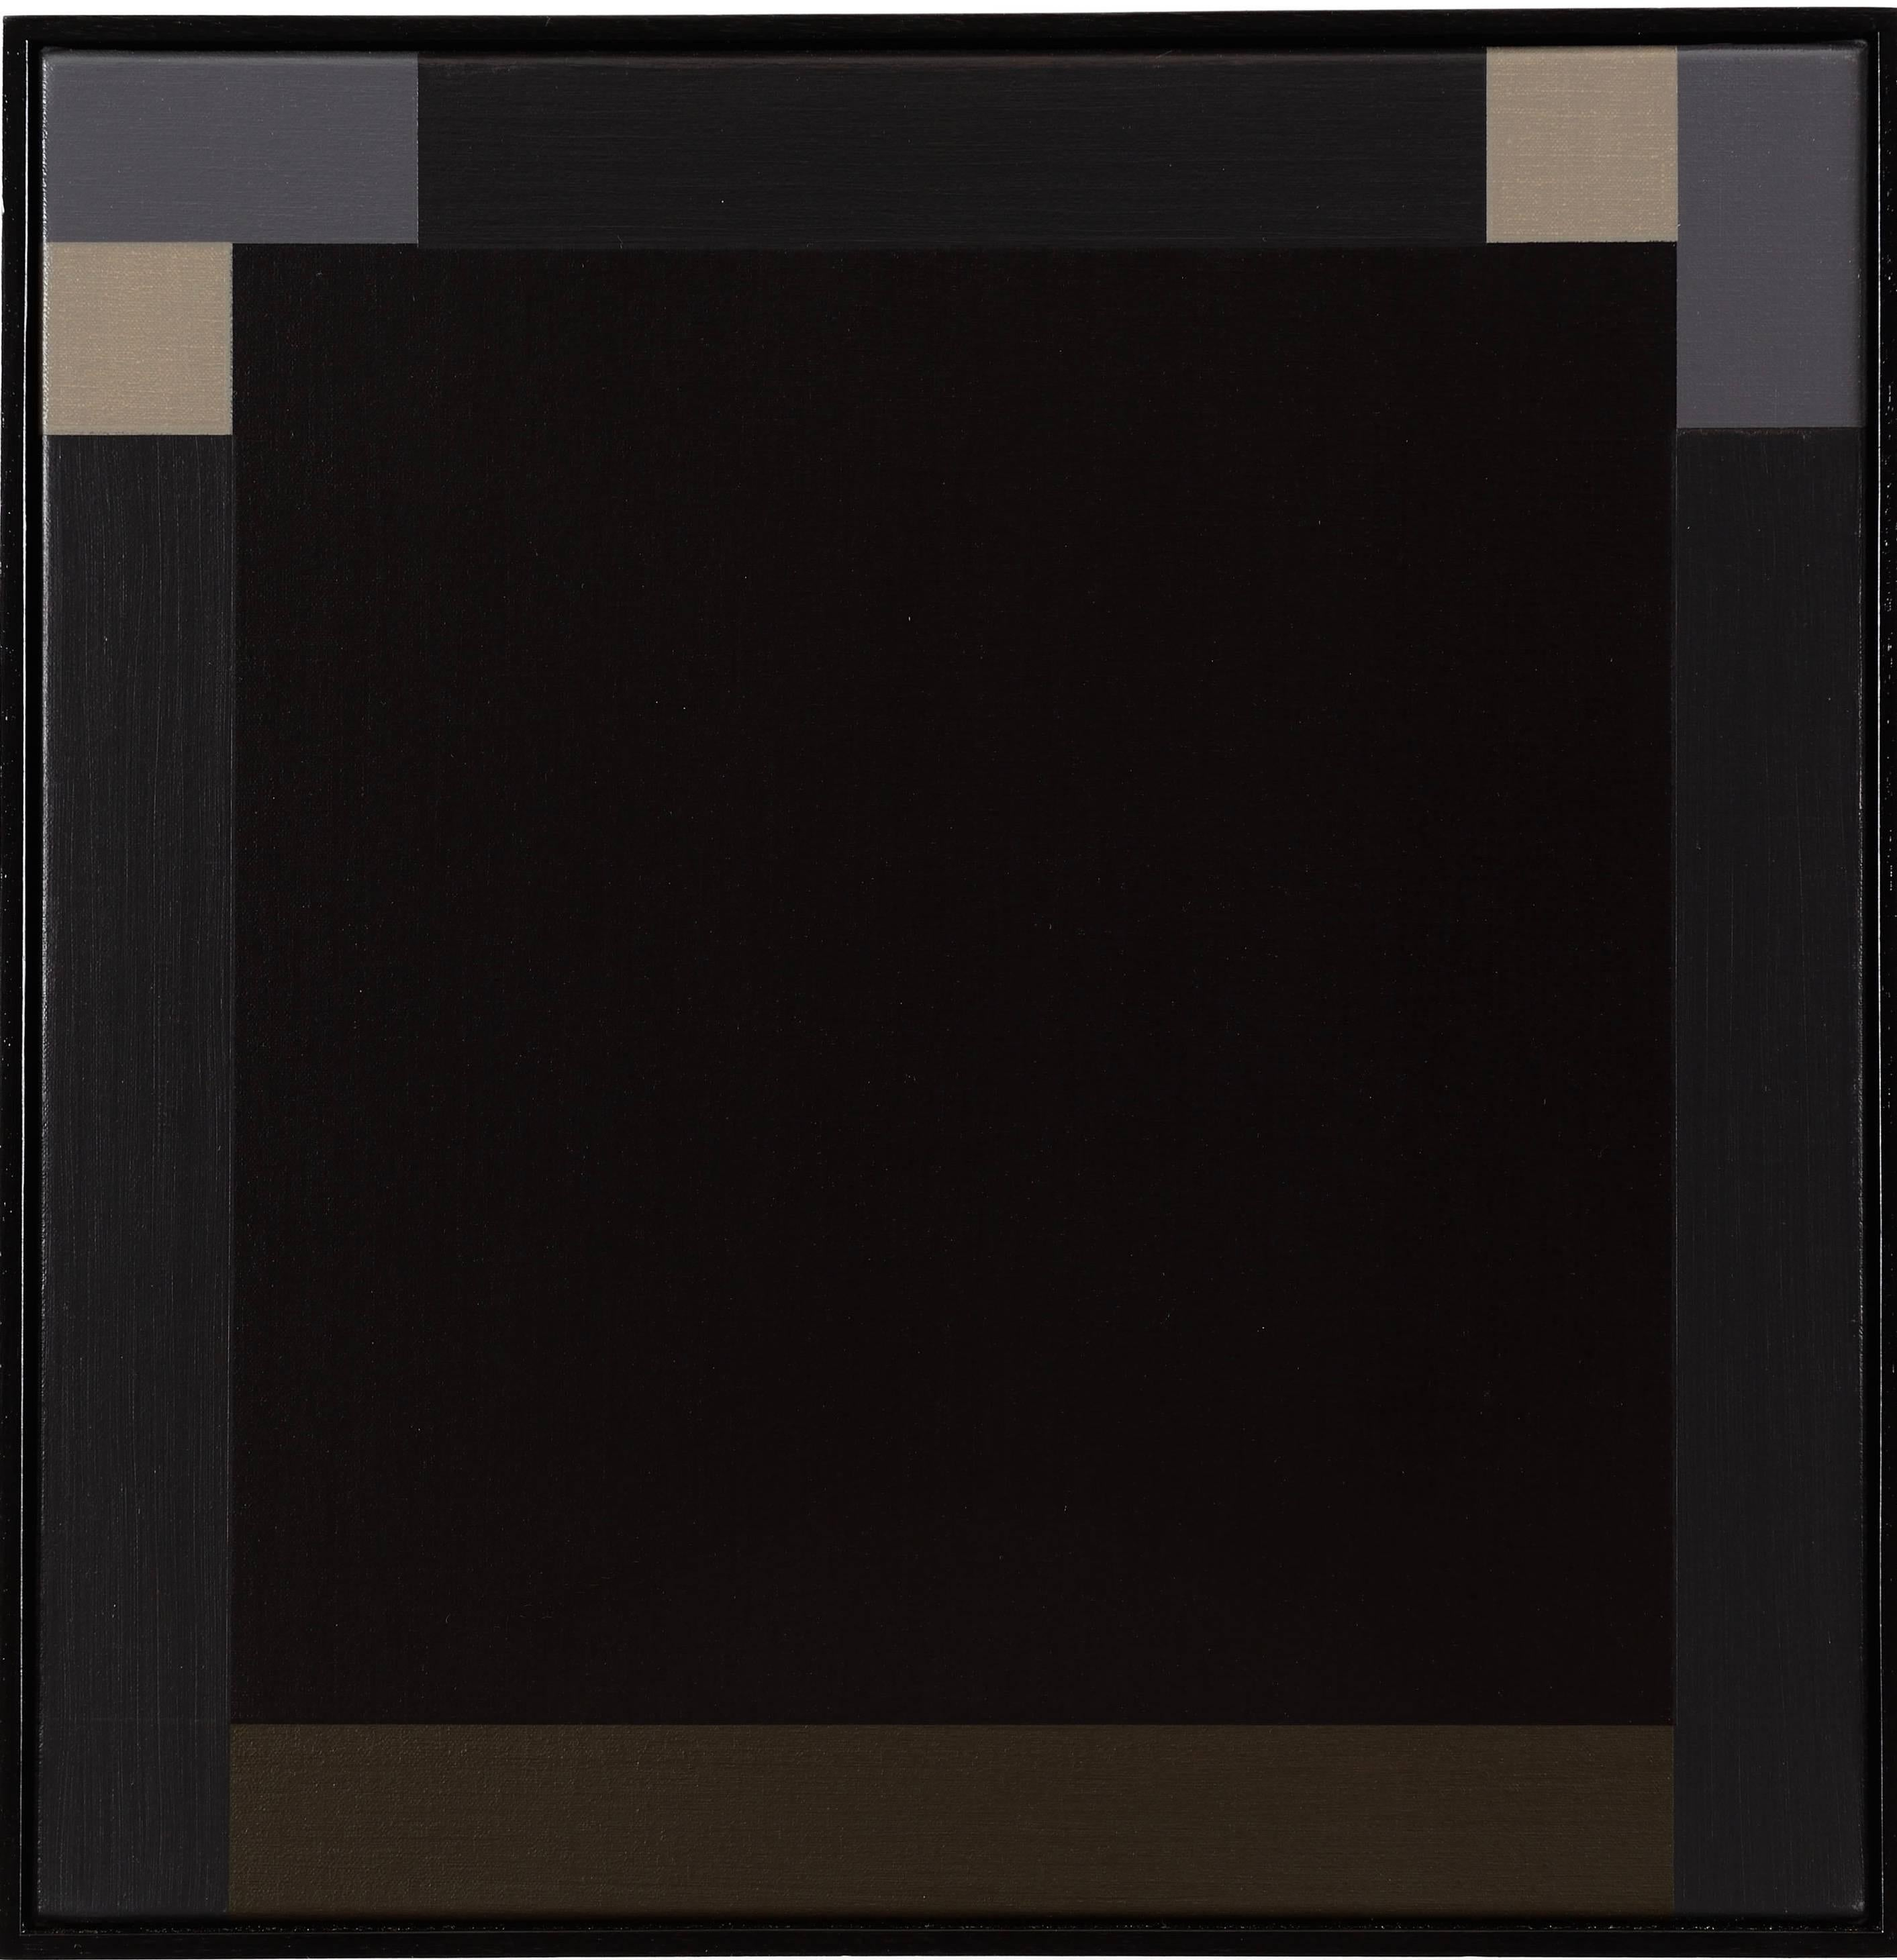 Painting No. 31, 2003/2004